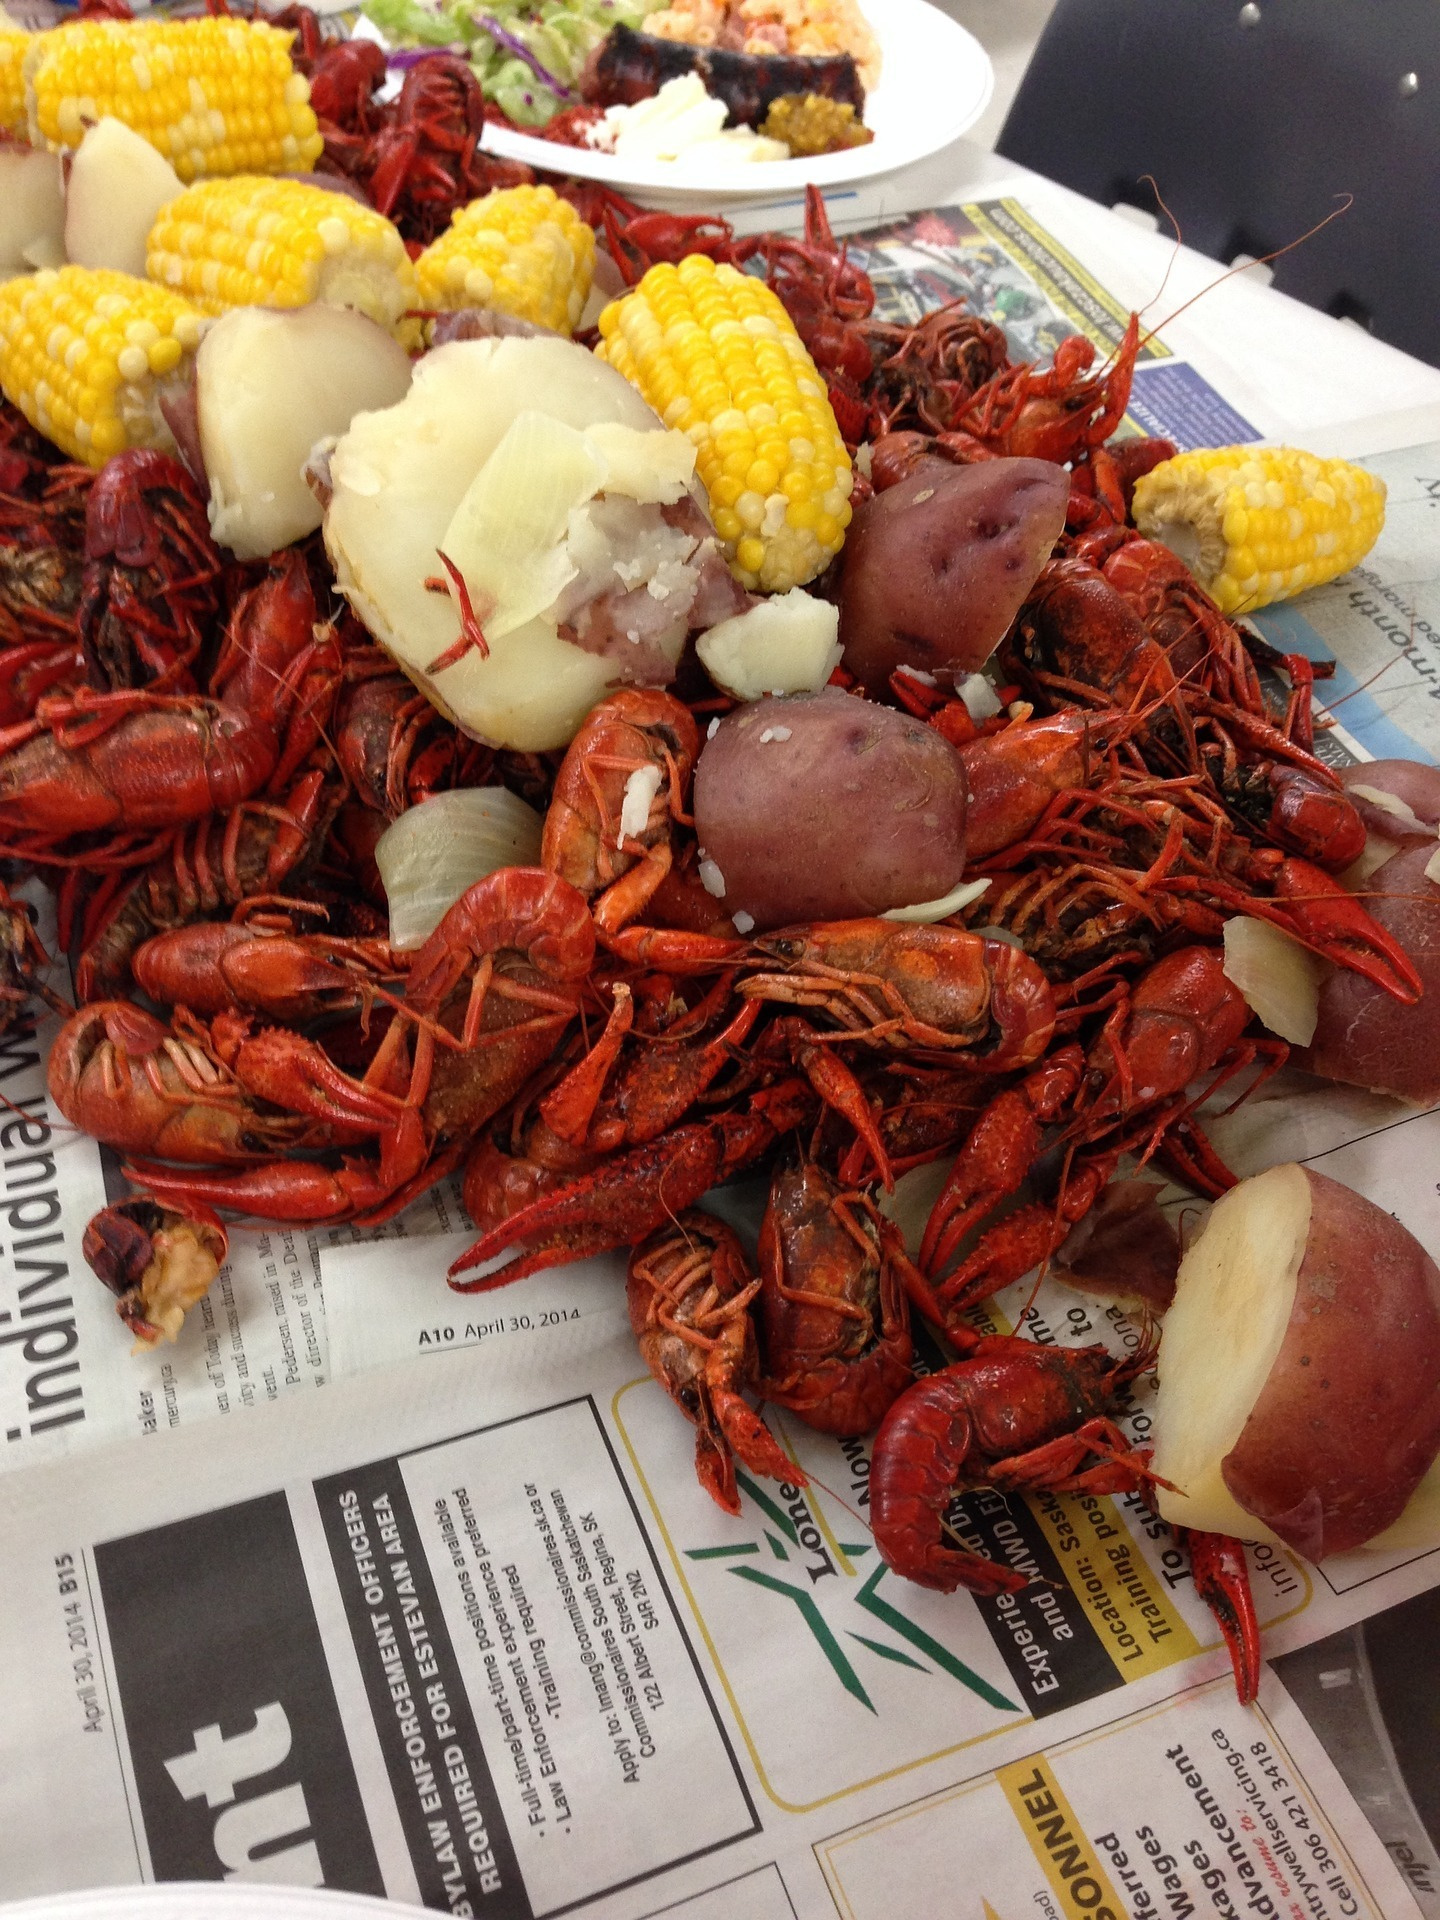 Generally Speaking, A Seafood Boil Refers To A Social Event Or Gathering  That Centers Around